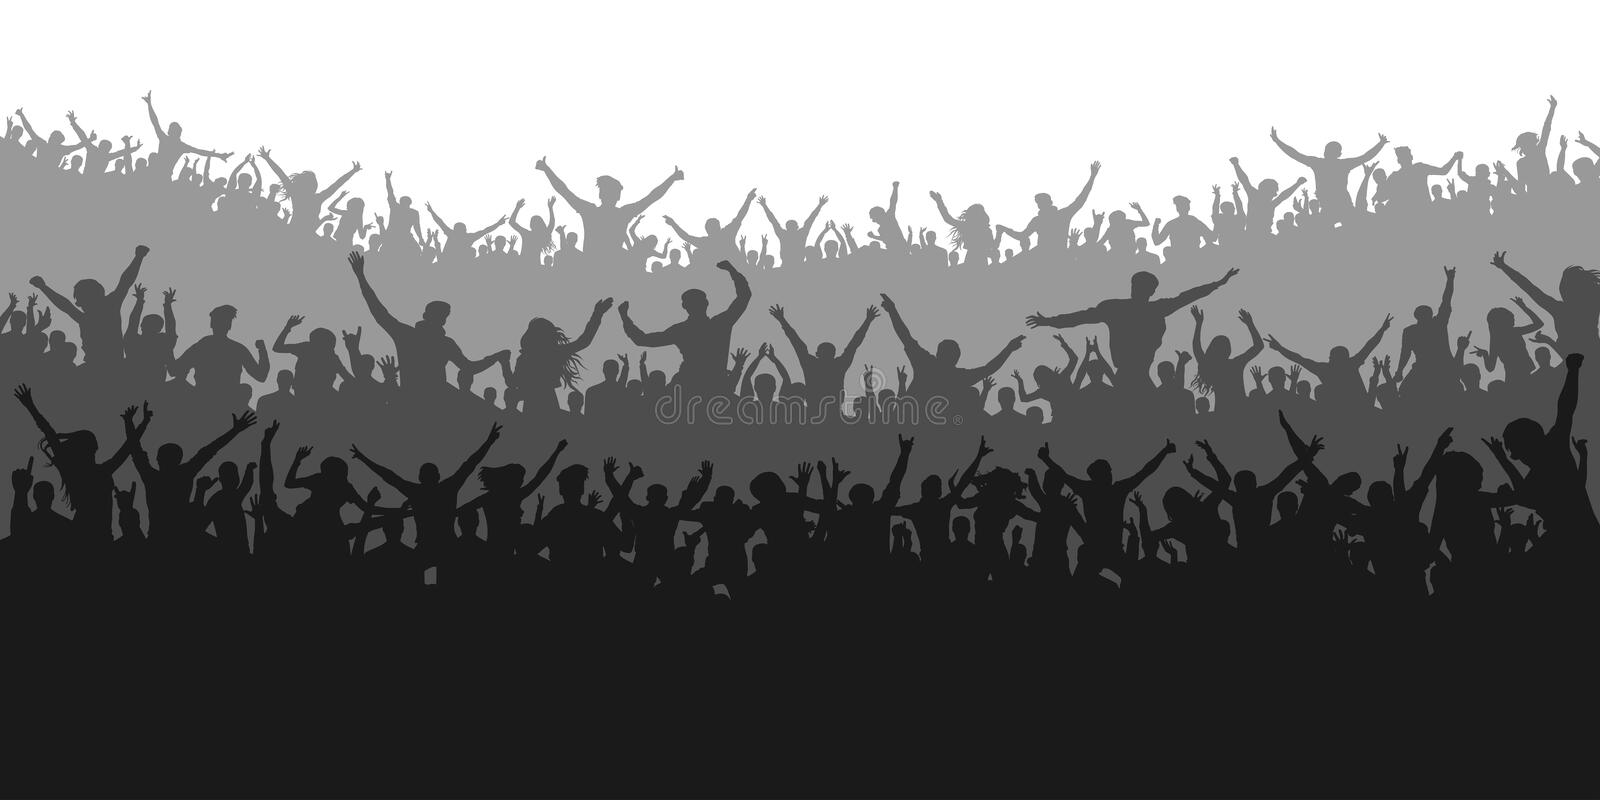 Applause sports fans. Cheering crowd people concert, party. royalty free illustration